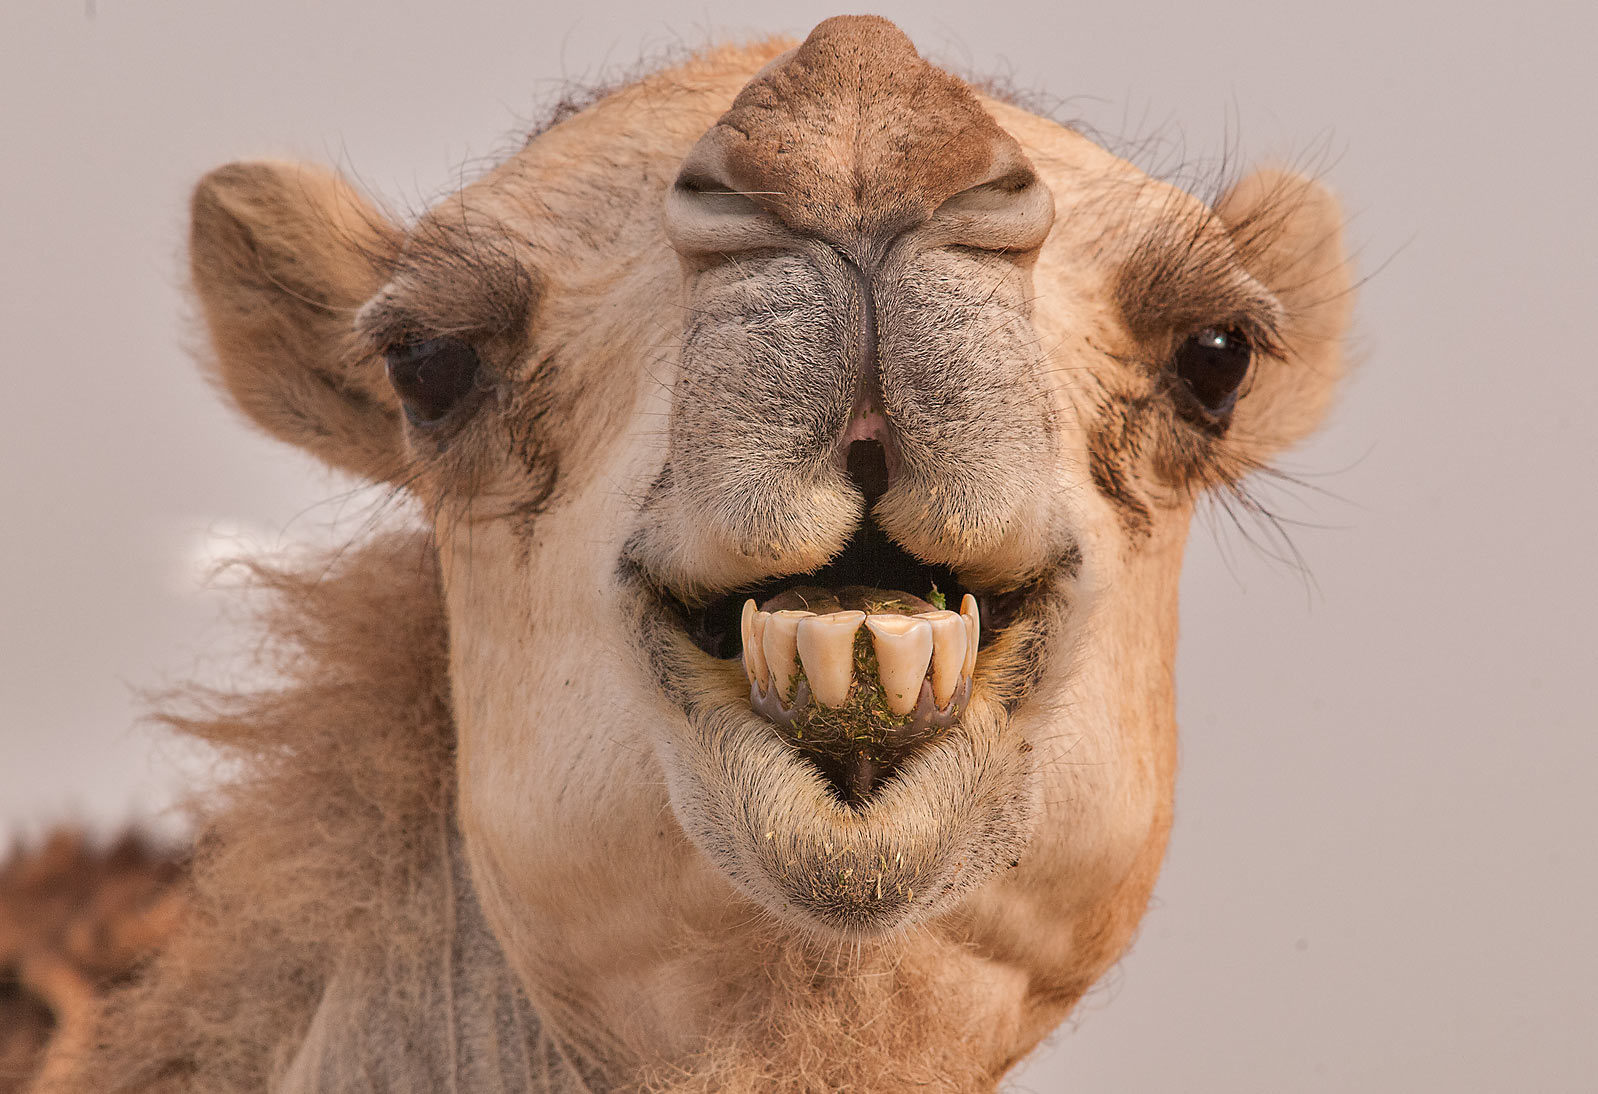 Camel showing its teeth in Livestock Market, Wholesale Markets area. Doha, Qatar